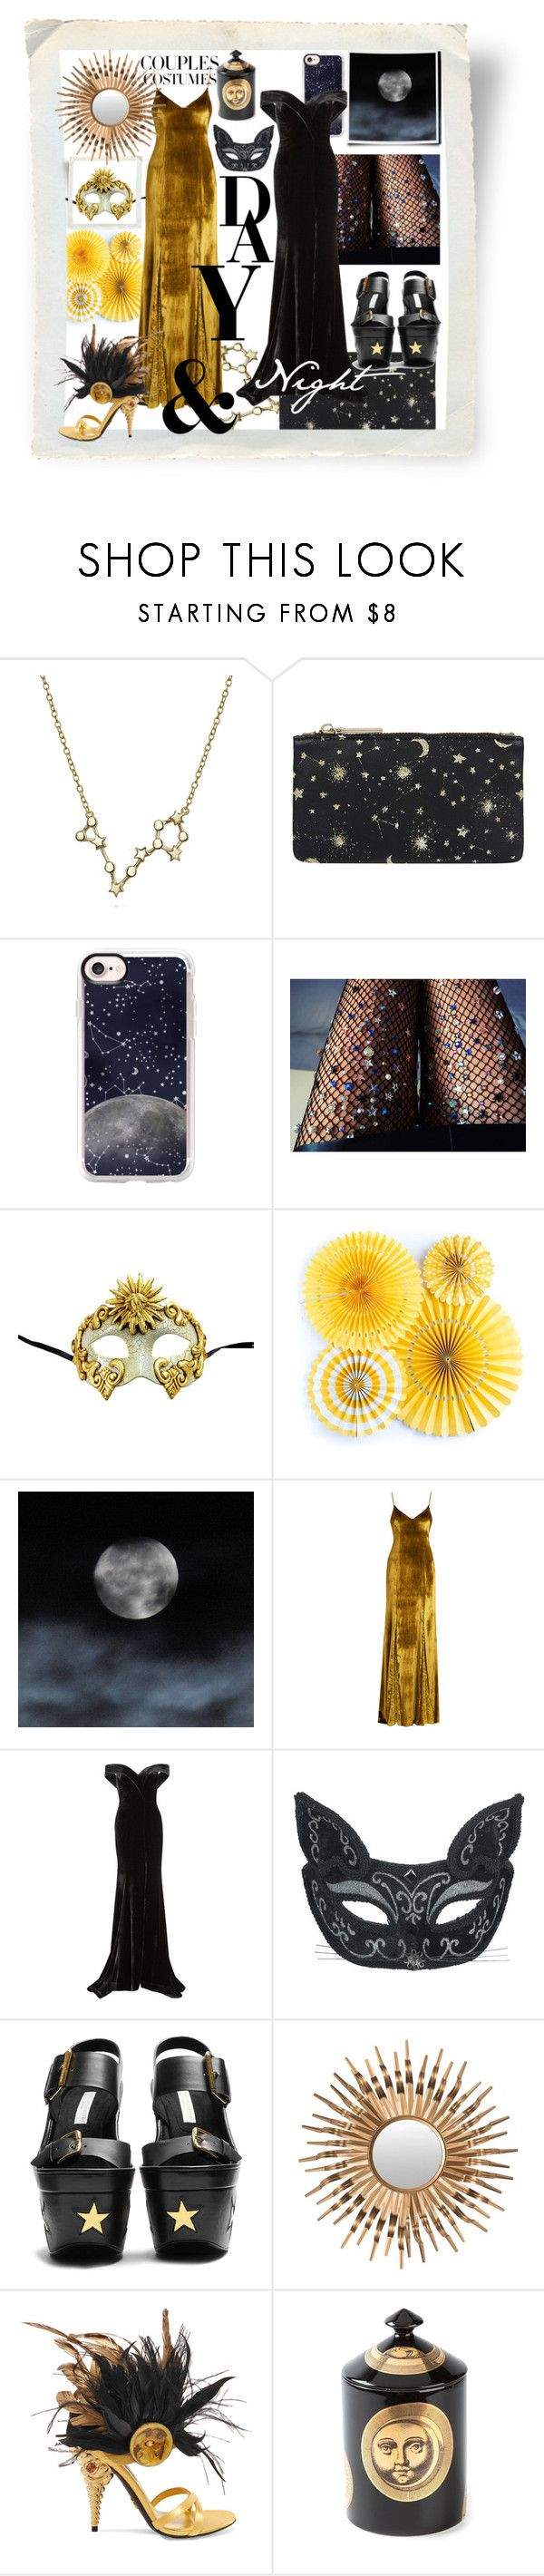 """Day & Night 🌚🌝 #couplescostumes"" by no-face-fashion ❤ liked on Polyvore featuring Bling Jewelry, Accessorize, Casetify, Lirika Matoshi, Galvan, Rachel Gilbert, STELLA McCARTNEY, Safavieh, Prada and Fornasetti"